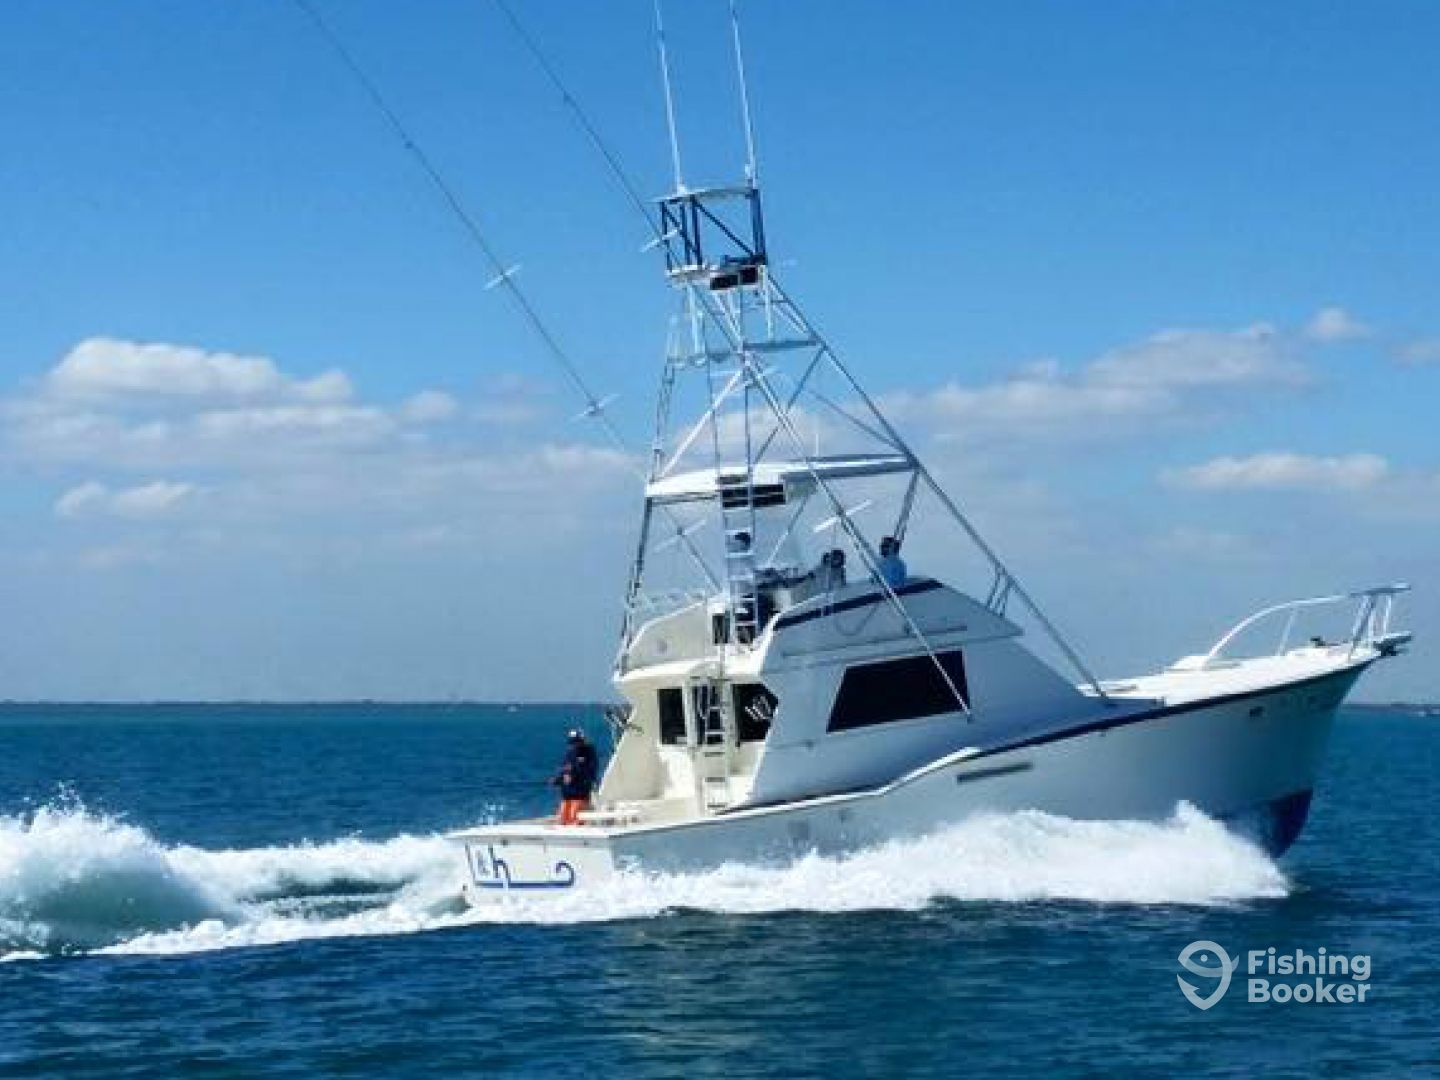 L h sportfishing key biscayne fl fishingbooker for Best boat for fishing and family